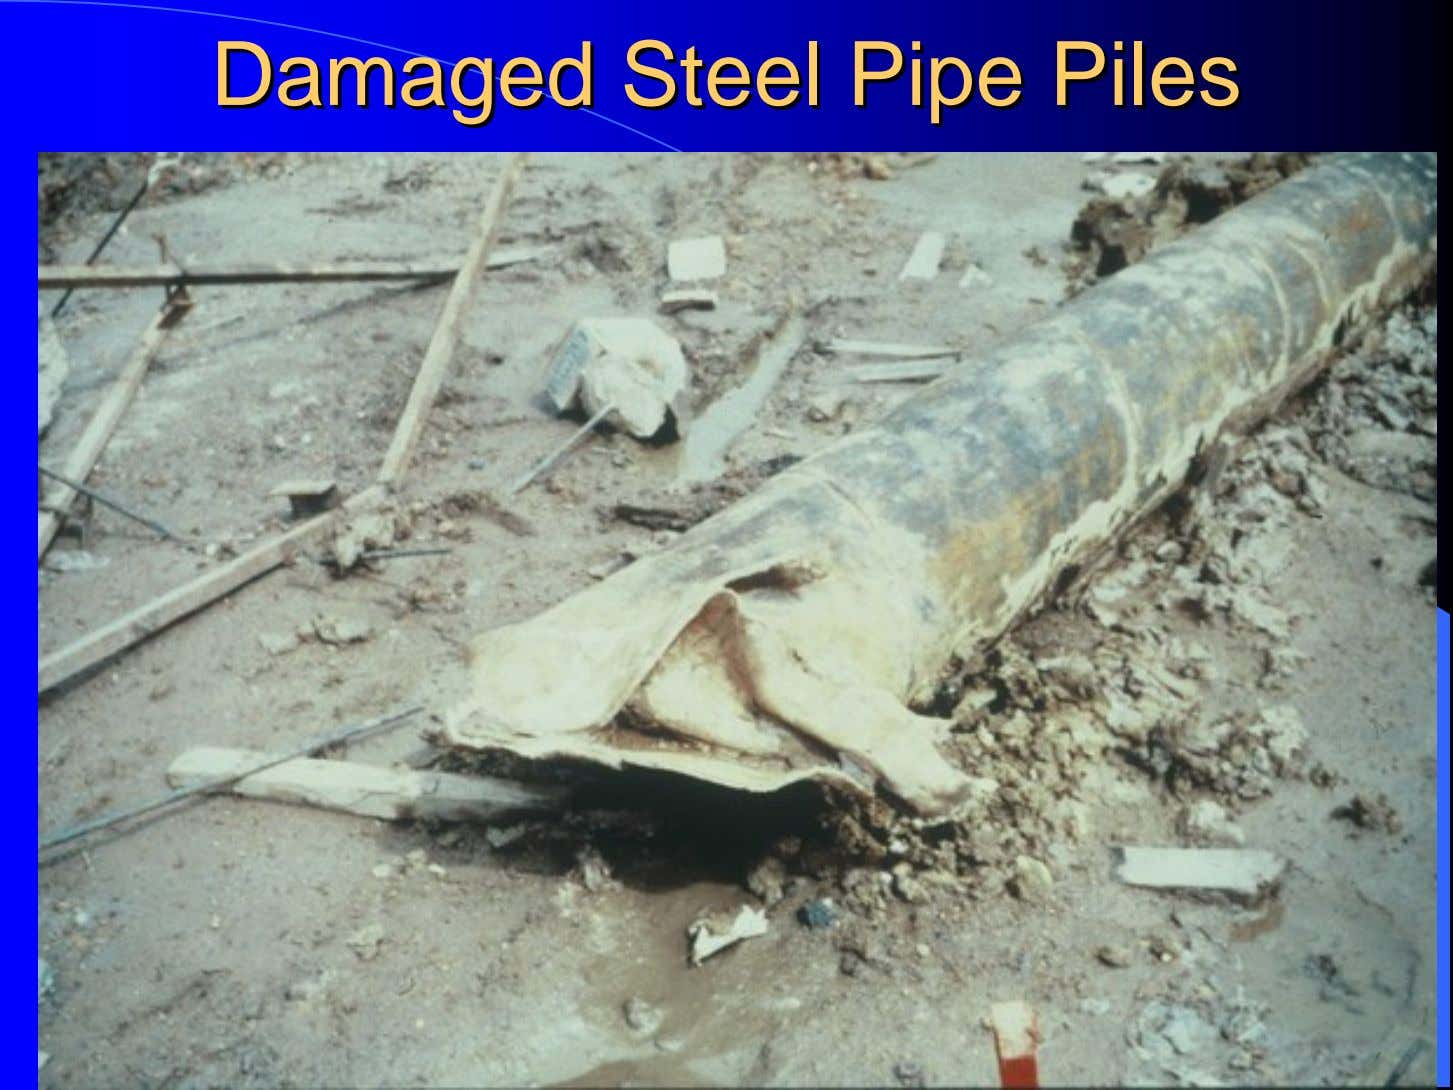 DamagedDamaged SteelSteel PipePipe PilesPiles